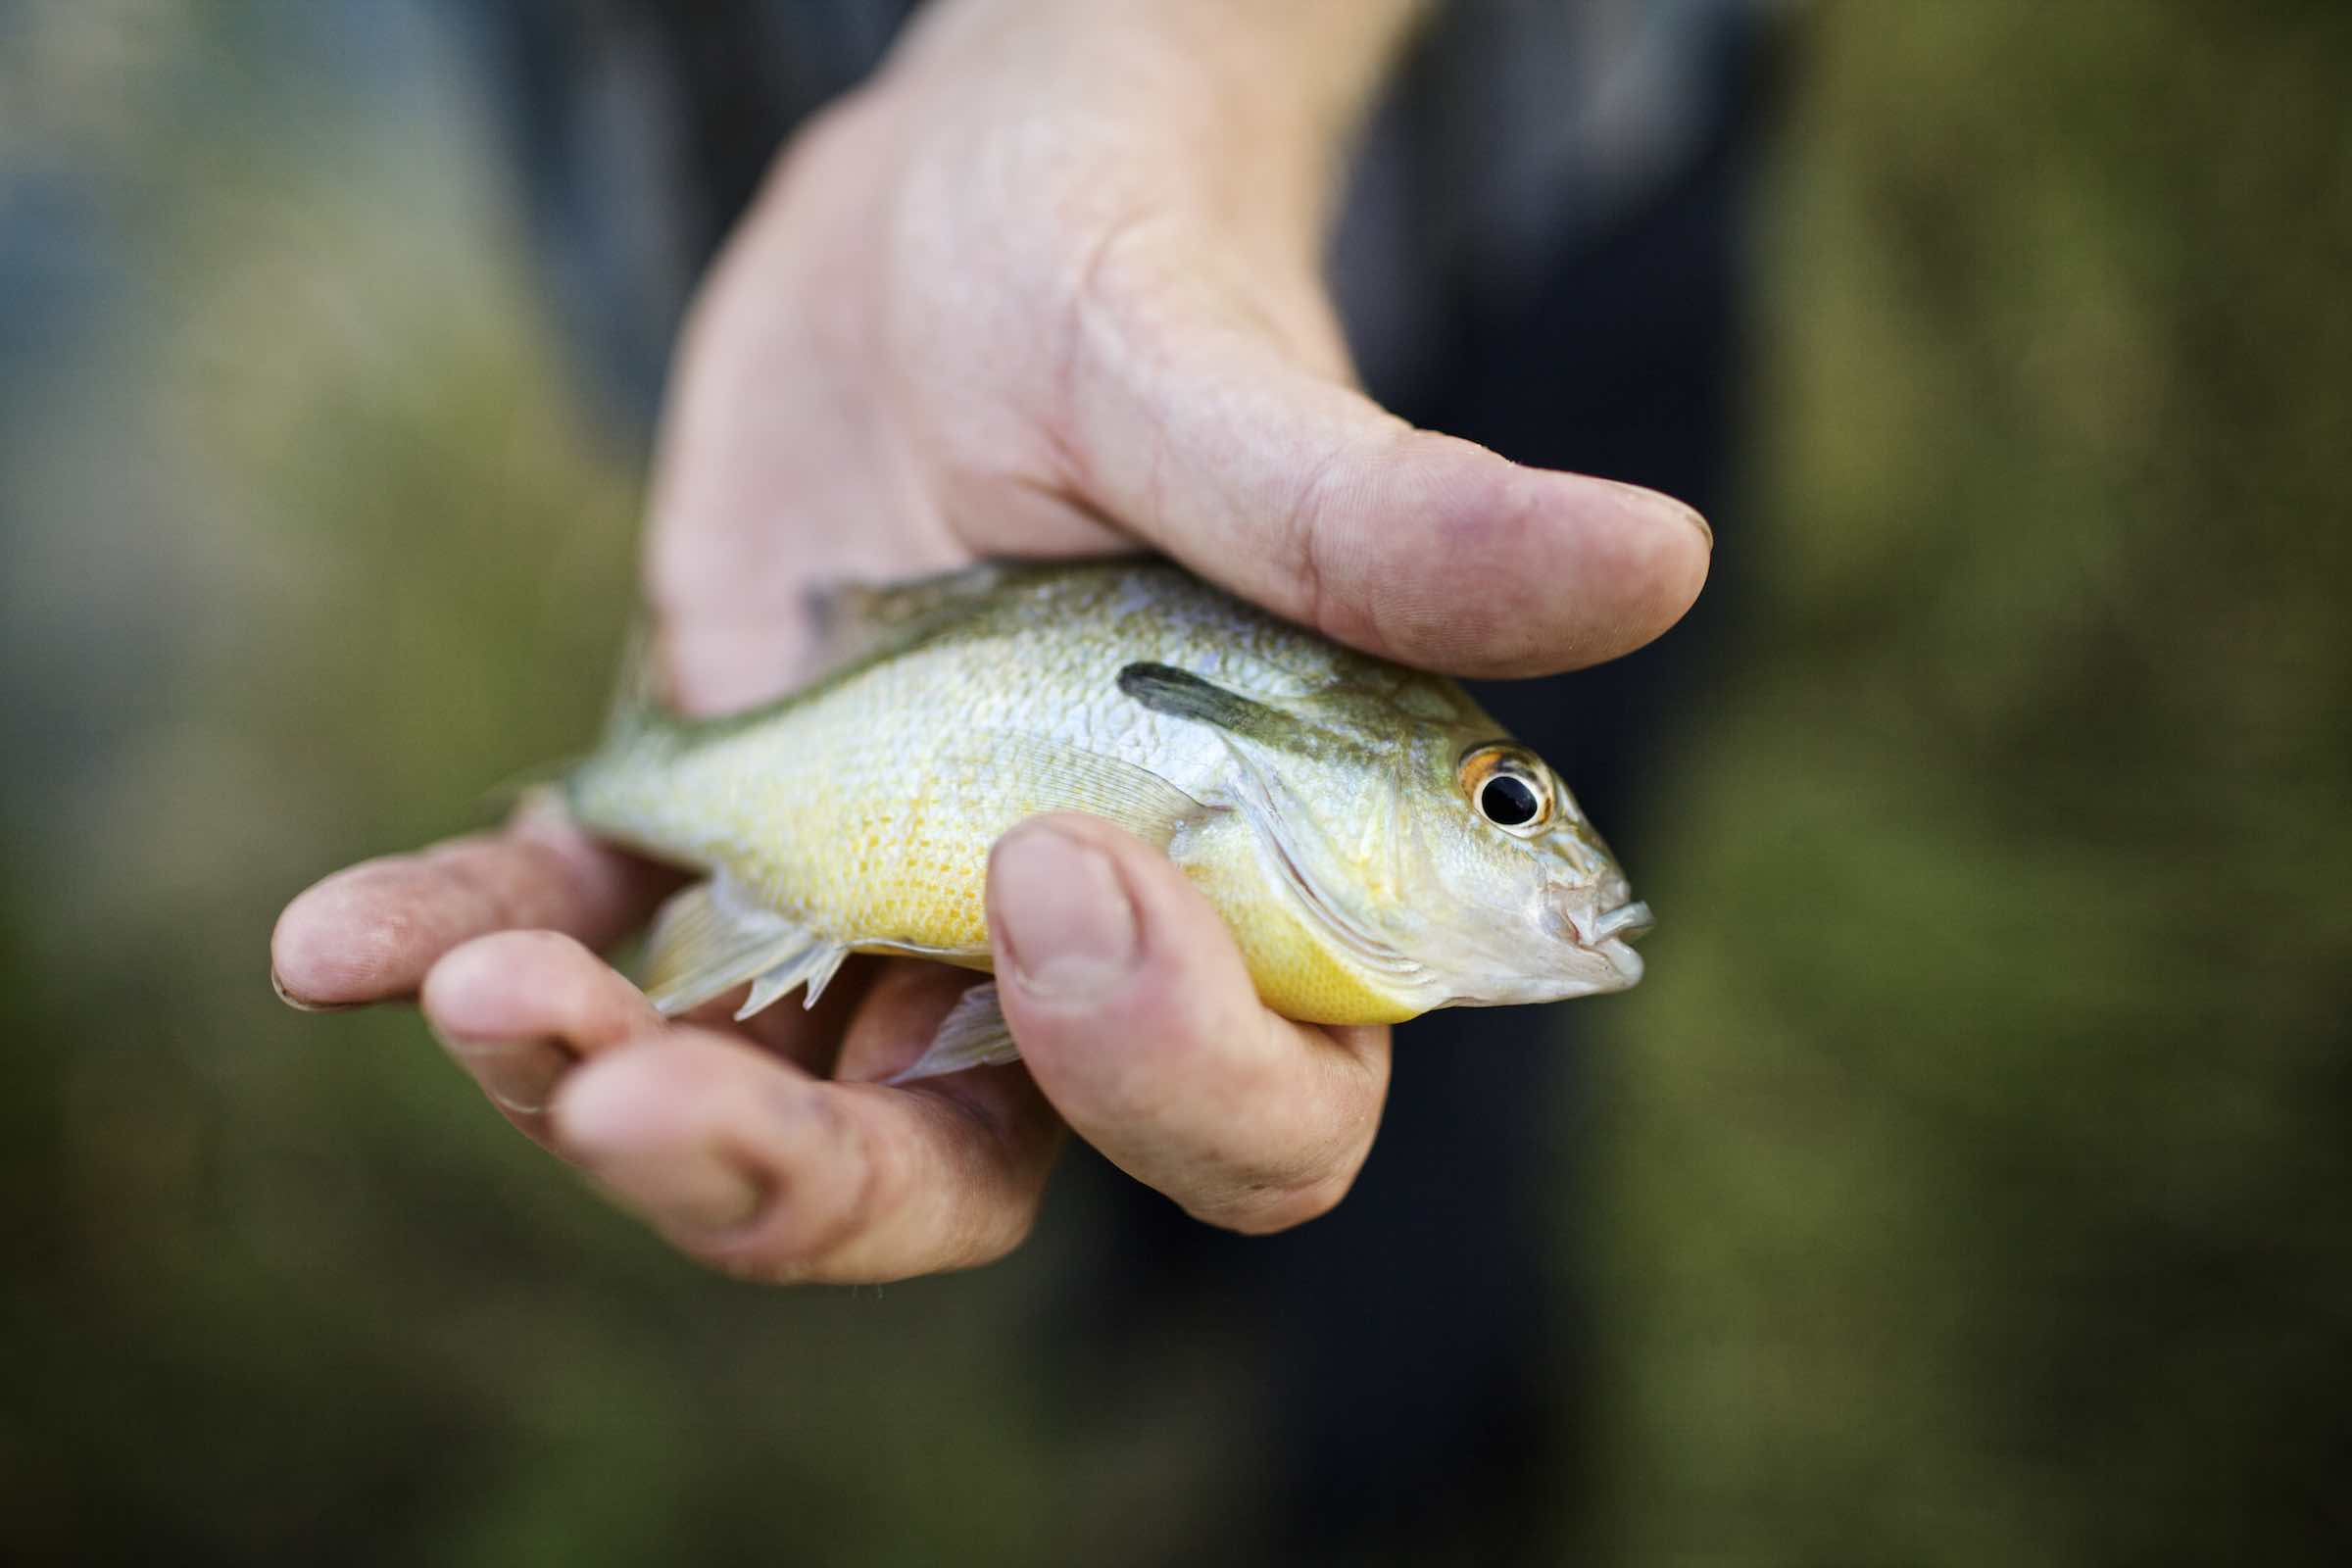 Jody Horton Photography - Hand presenting a small fish.